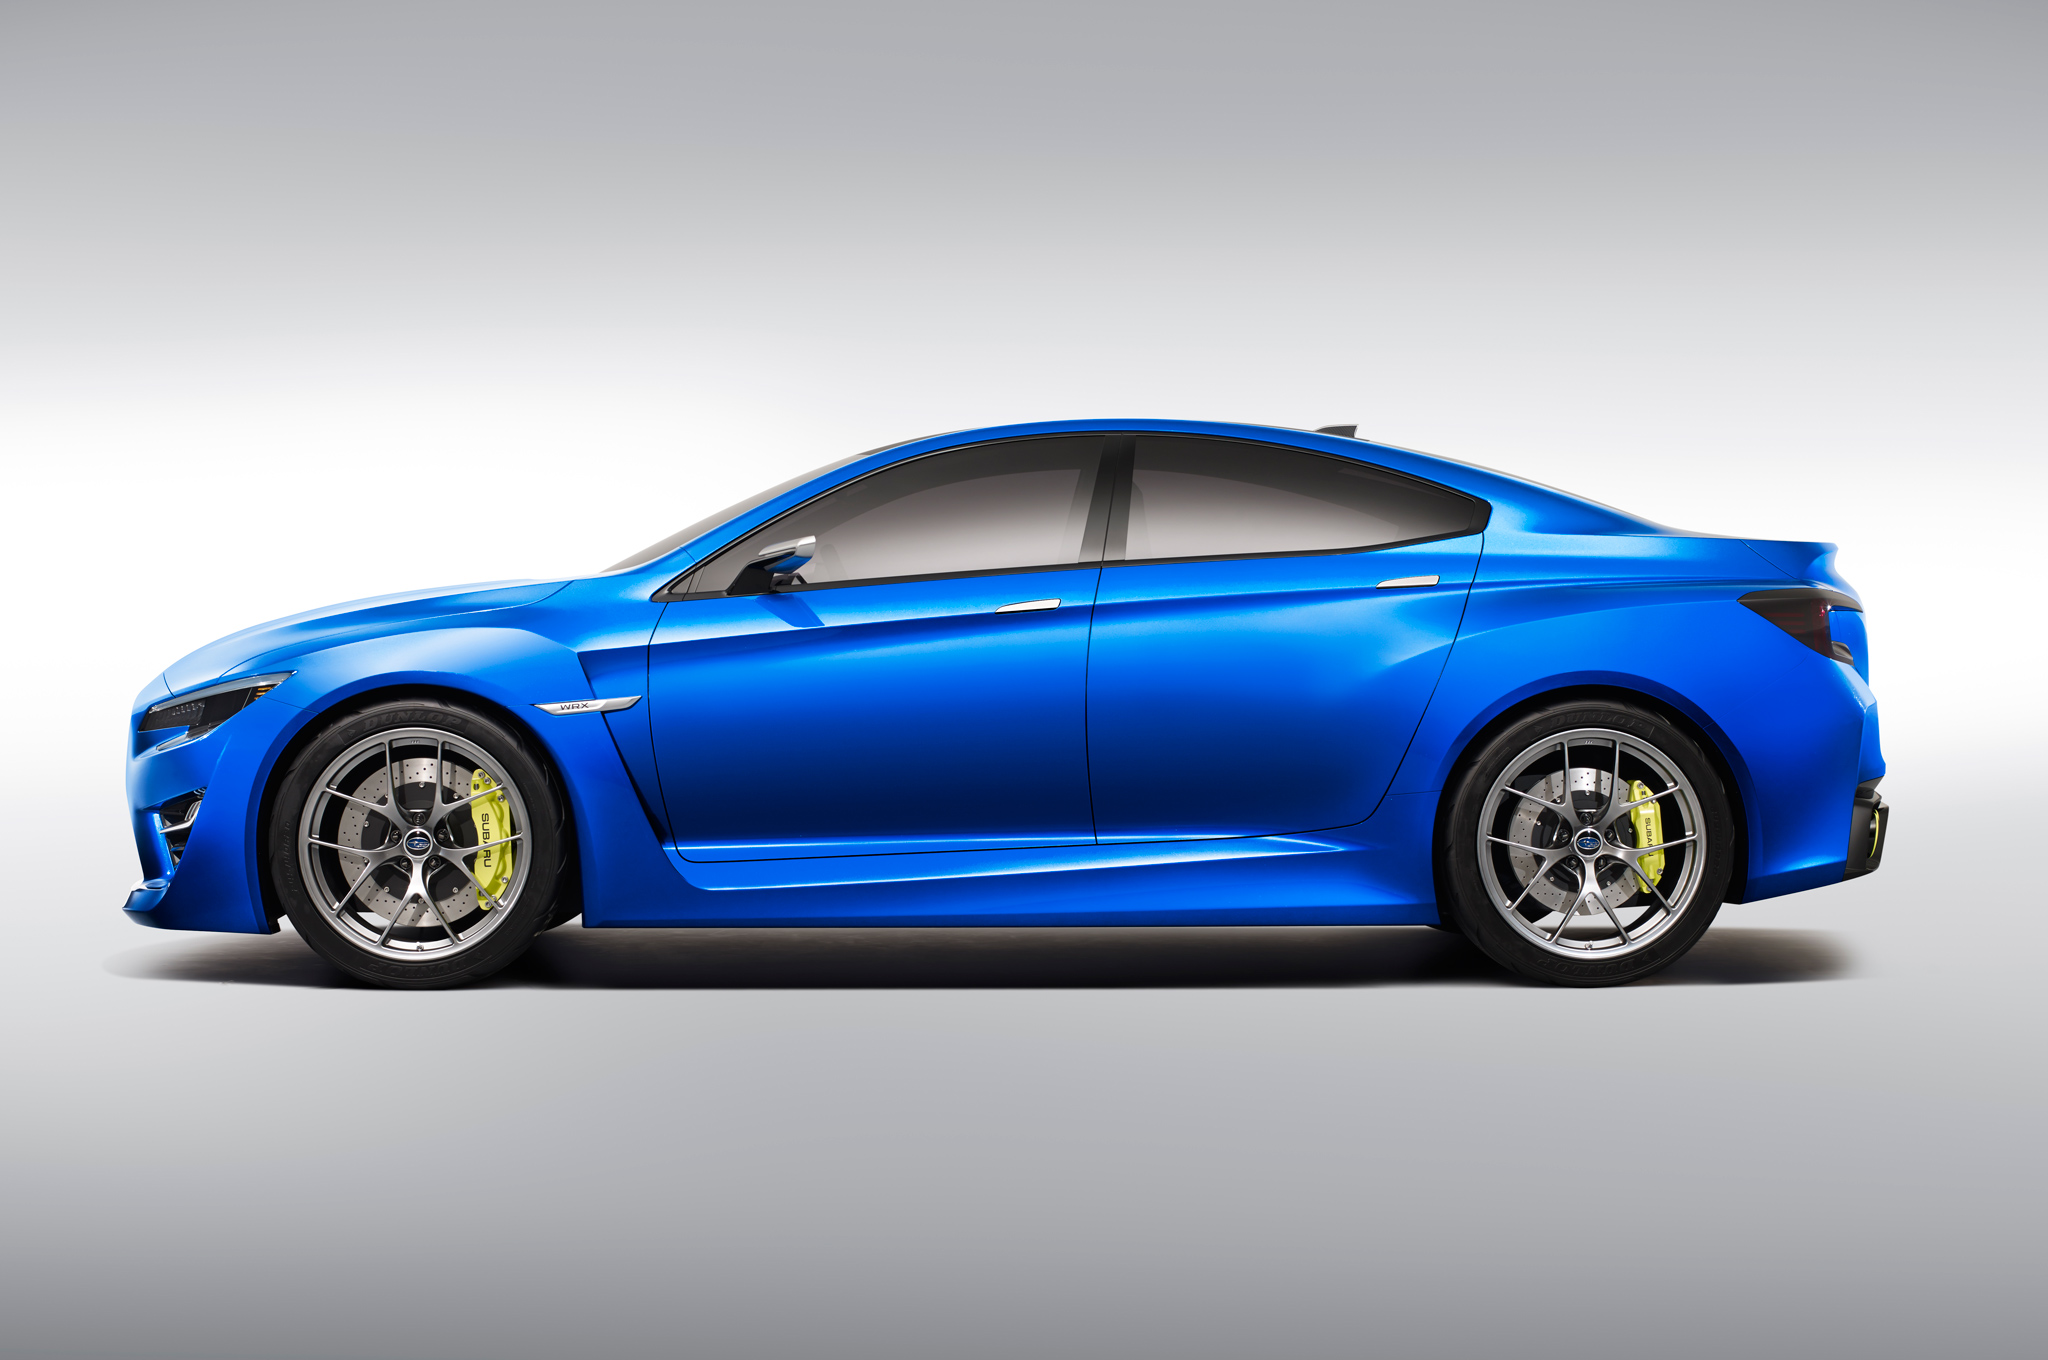 2016 Subaru WRX Concept Picture Wallpaper 2048x1360